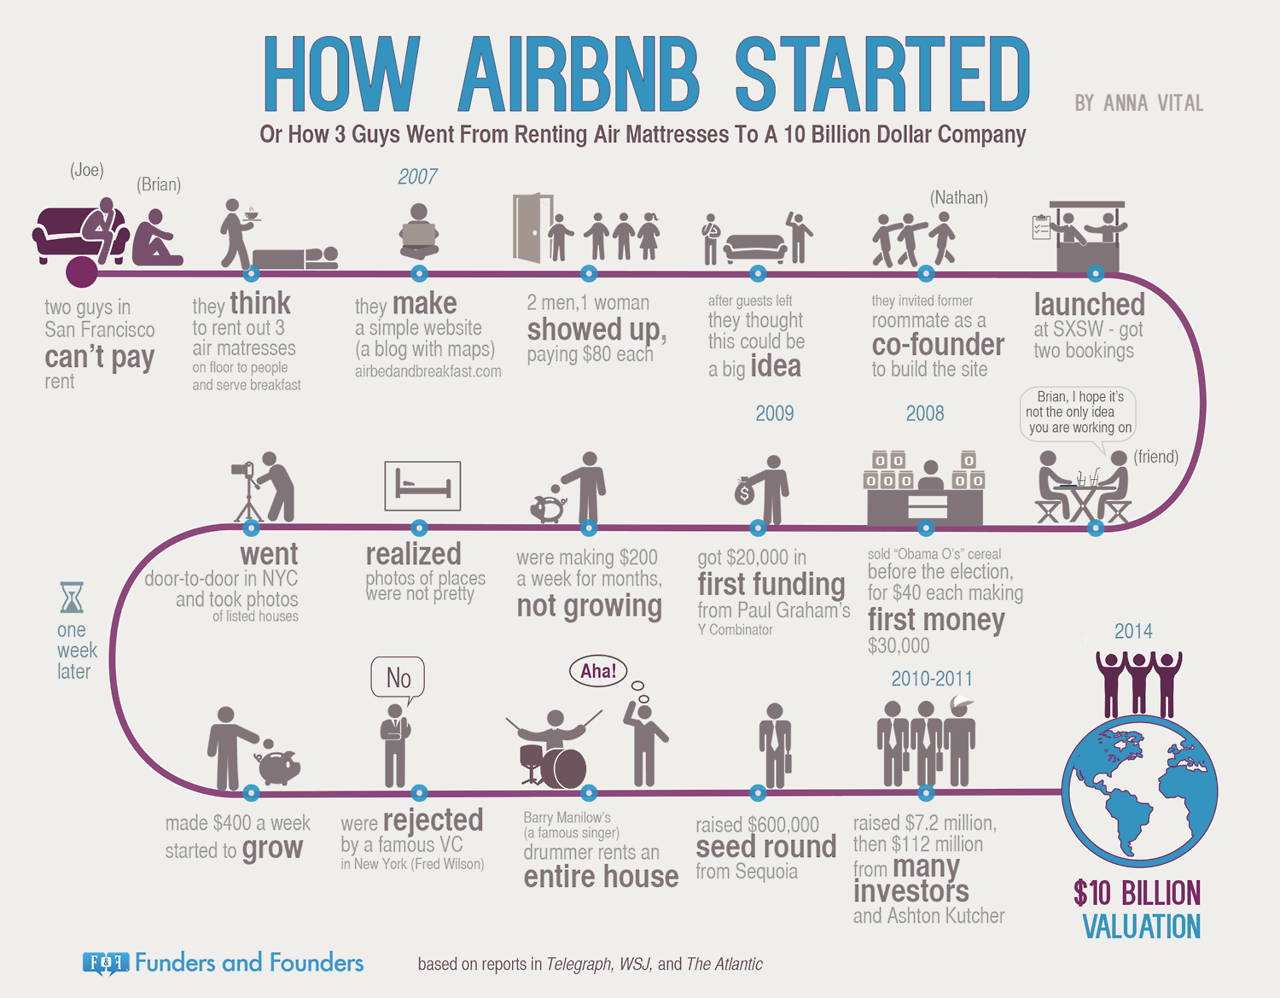 airbnb-funders-and-founders-website-for-entreprenuer-business-start-ups 2